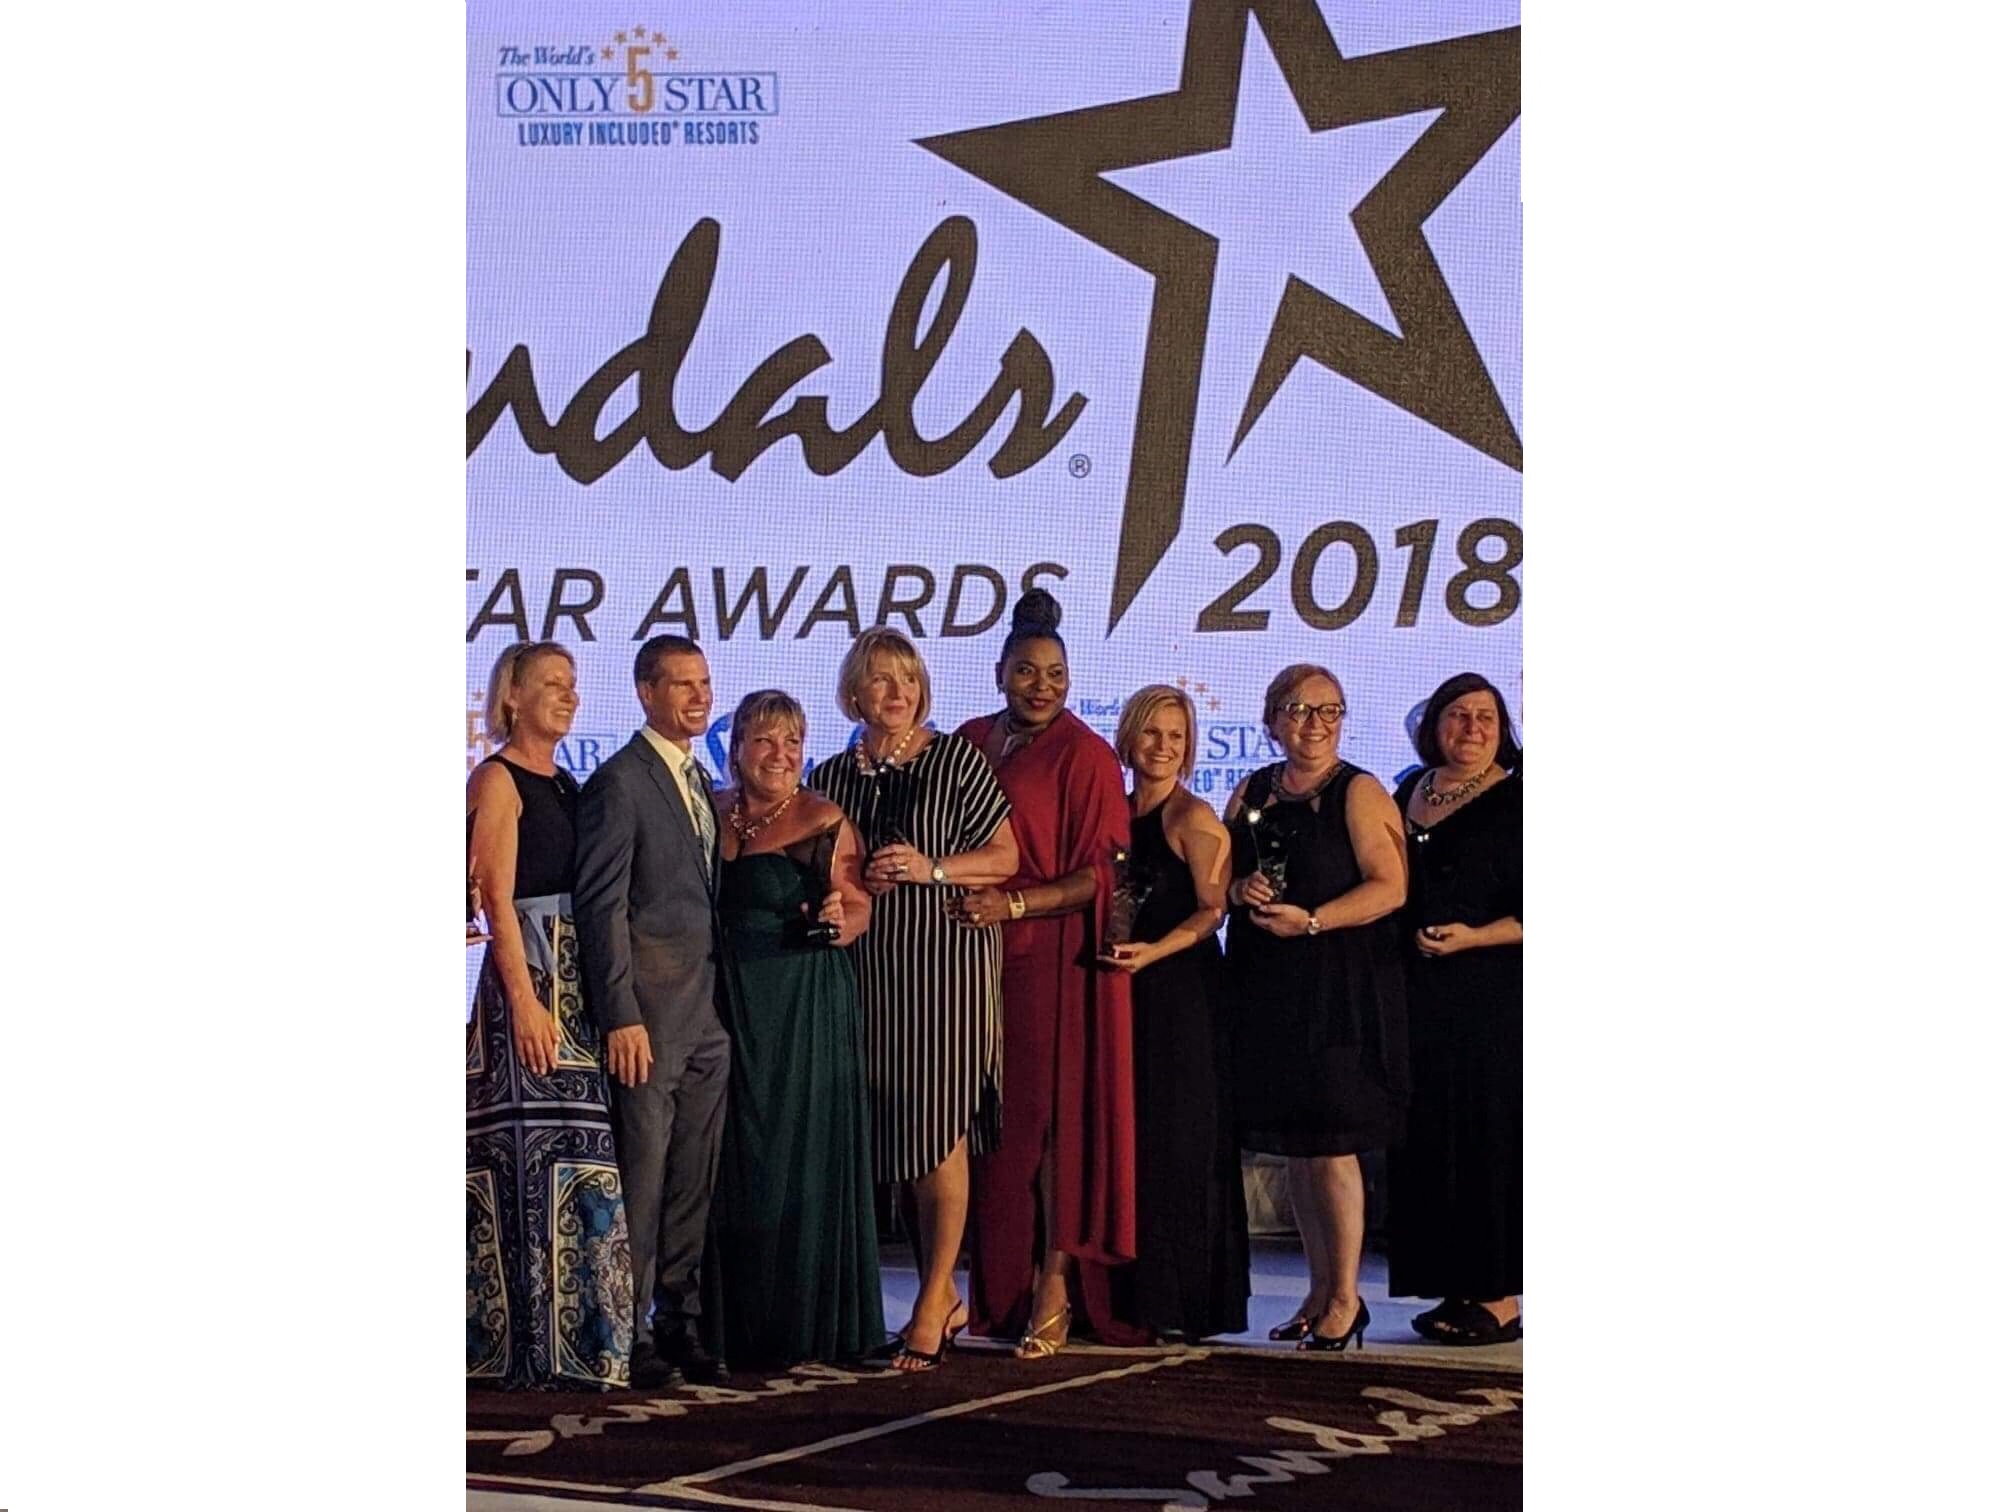 ab7b098de Travel Professionals International (TPI) was once again named the Top Host  Agency in Canada along with being named as one of the Top 10 Agencies  Worldwide ...